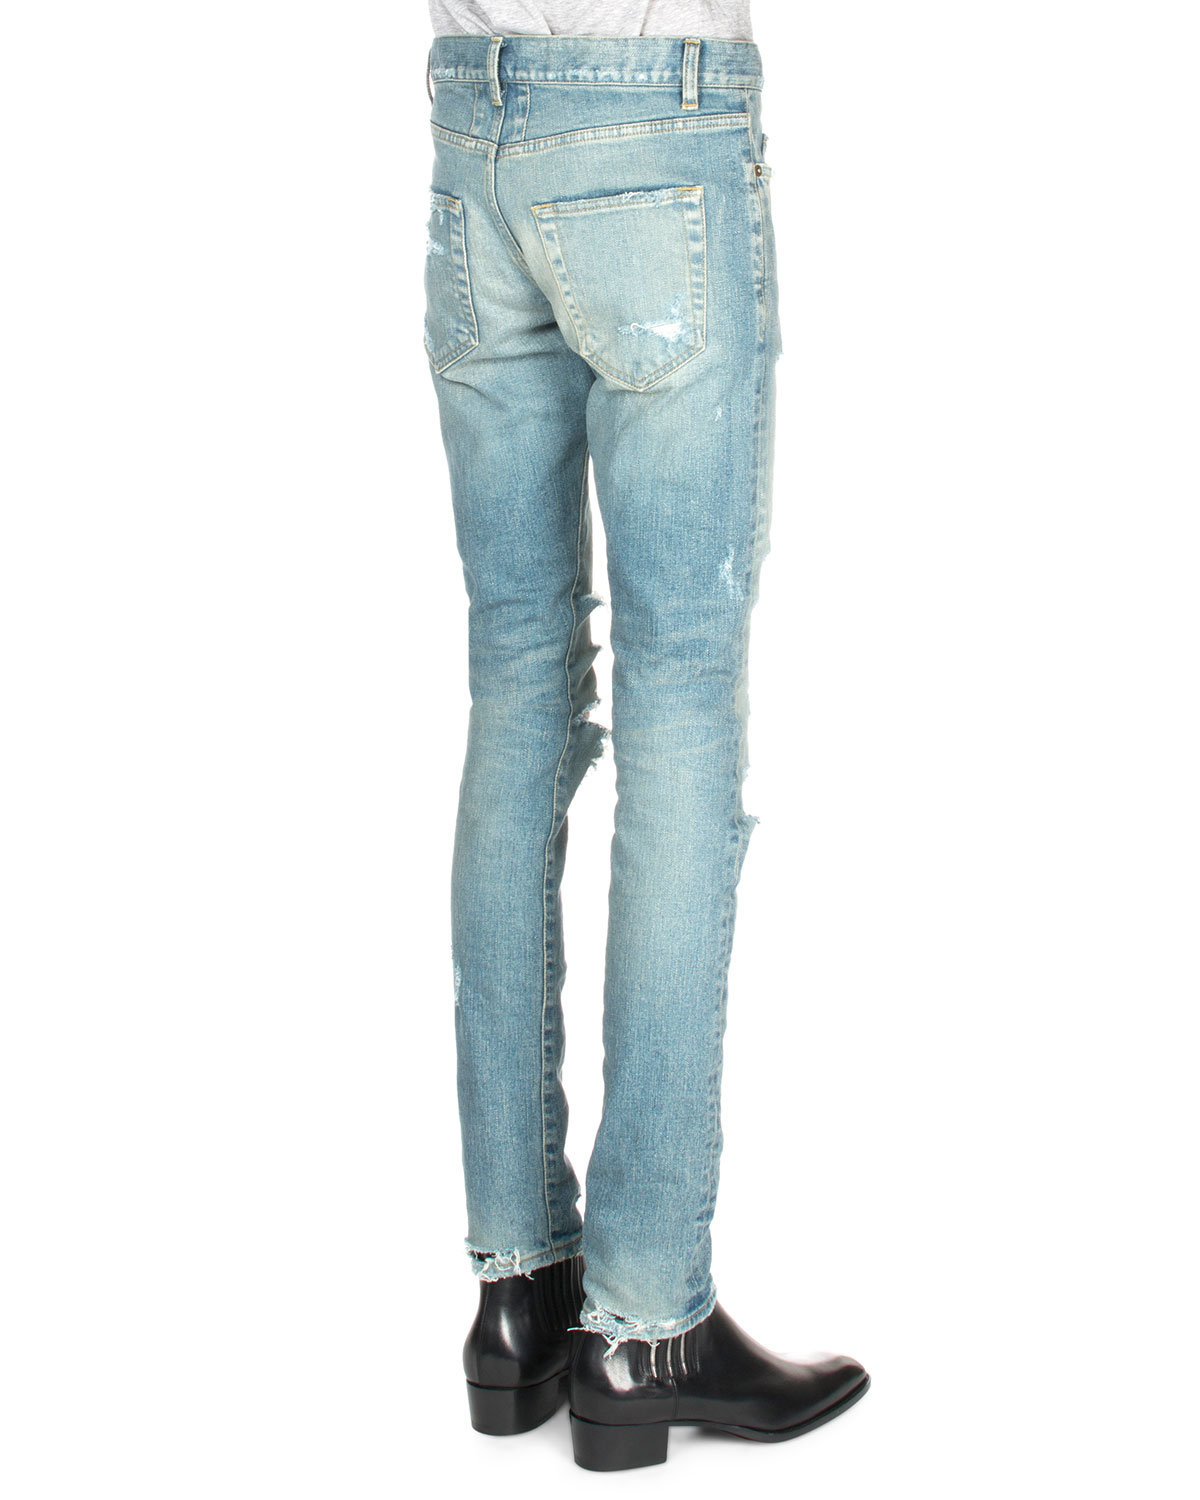 distressed boyfriend jeans - Blue Saint Laurent Outlet Countdown Package Cheap Shop For From China Free Shipping Low Price pMltsWGH